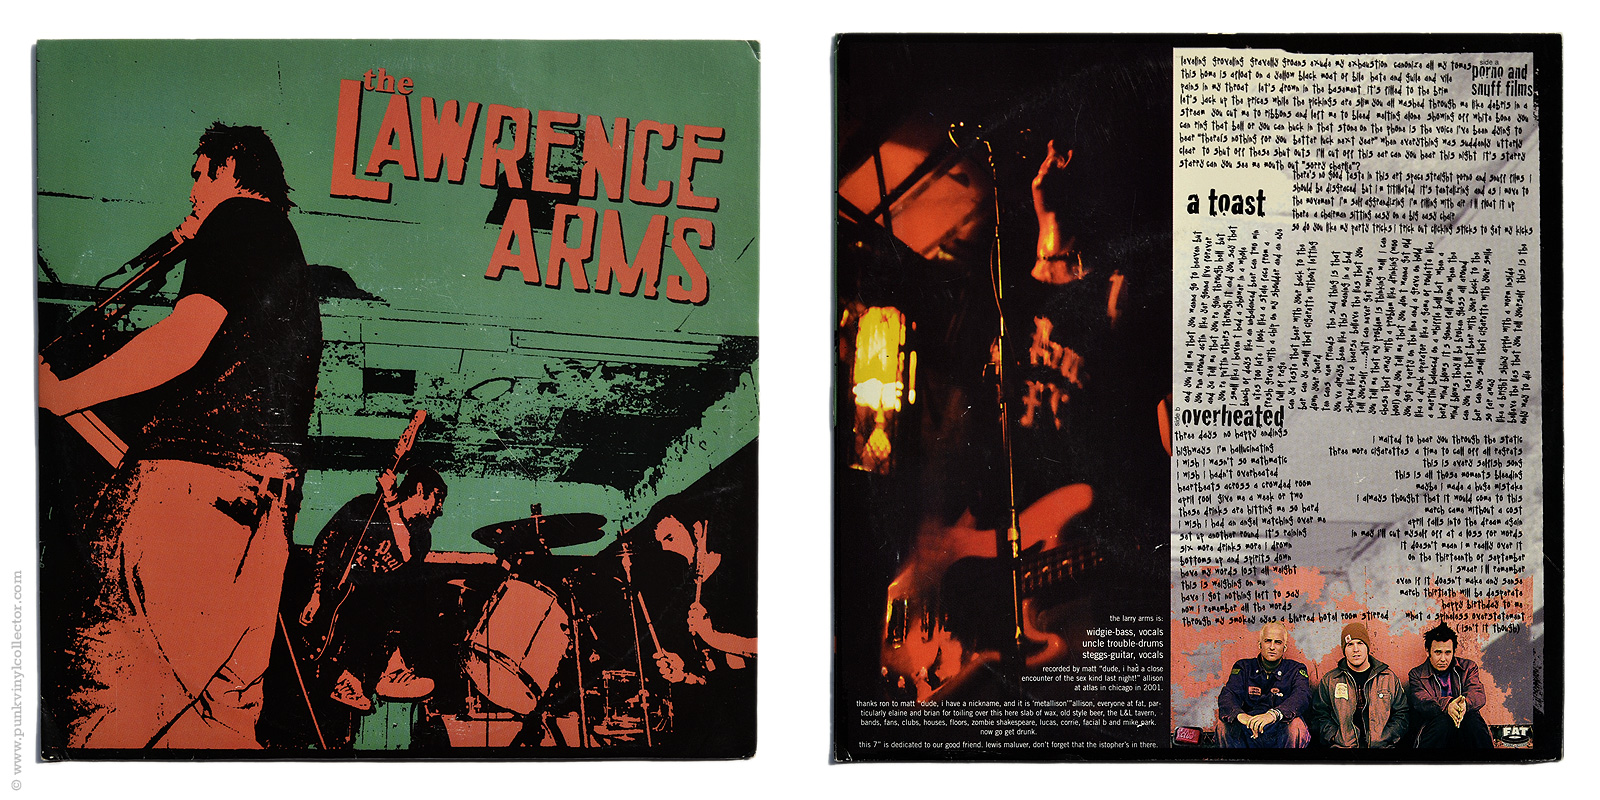 The Lawrence Arms Punk Vinyl Collector